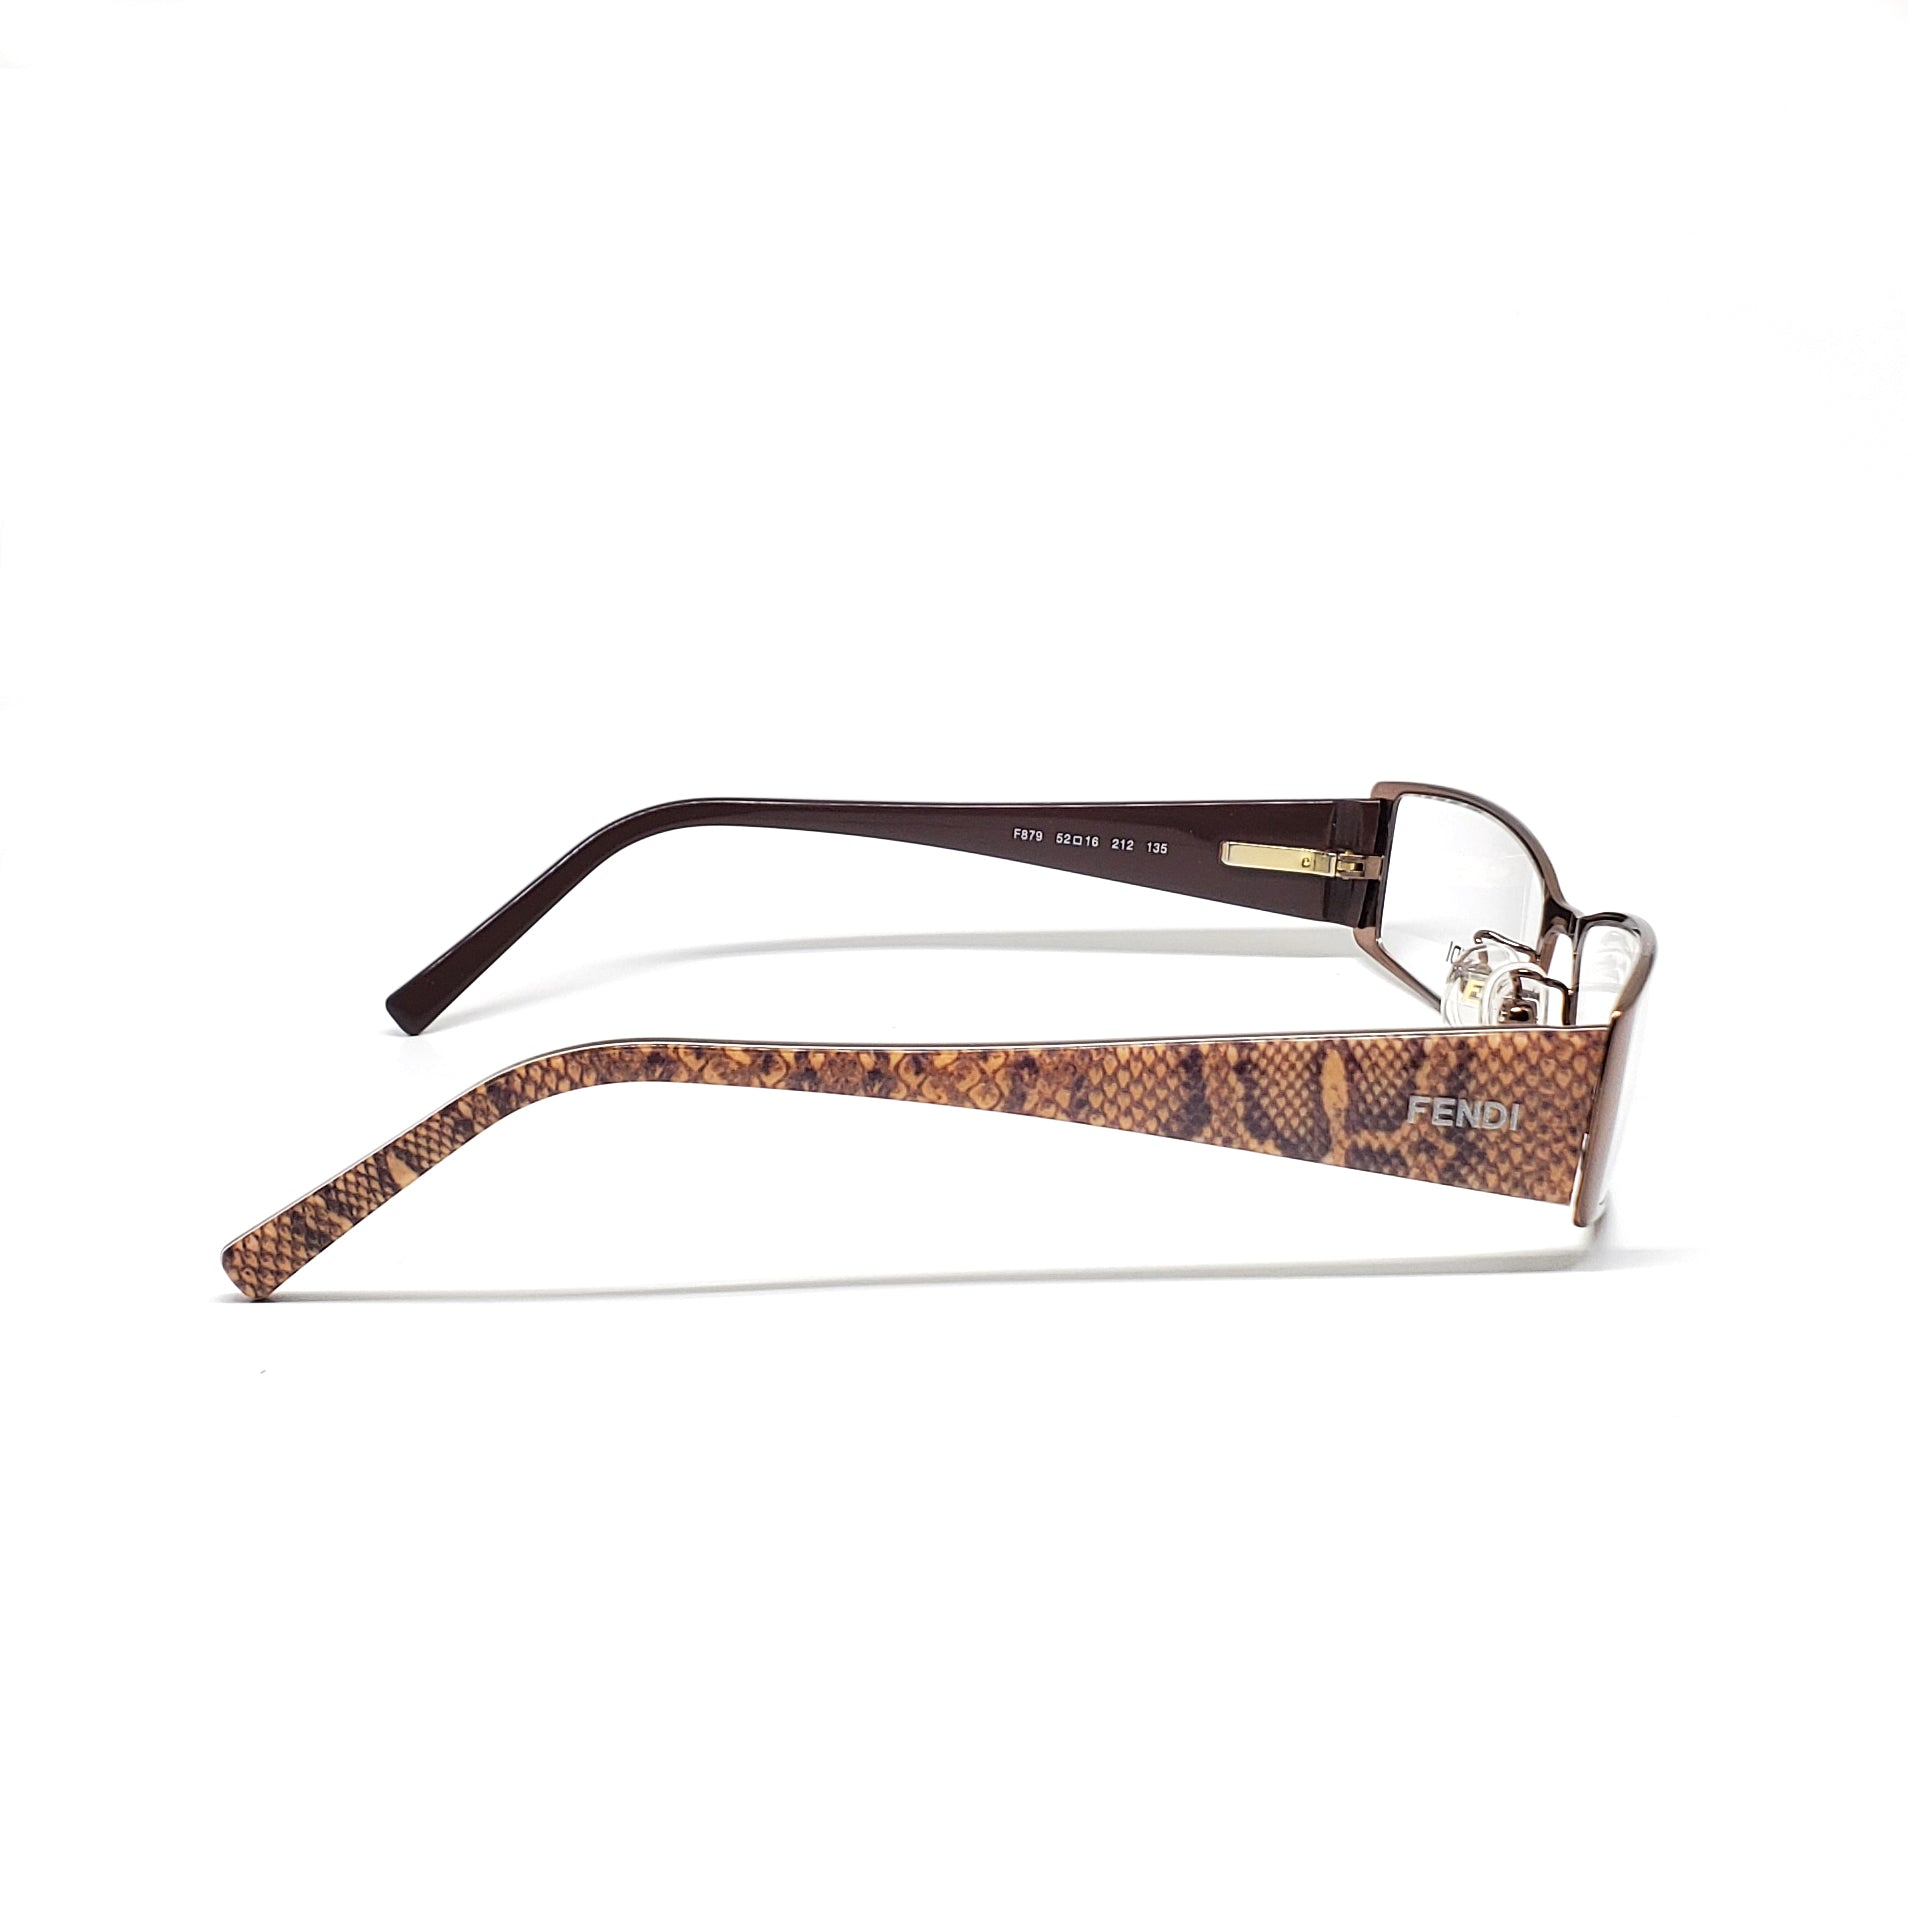 Fendi Eyeglasses - 879-212